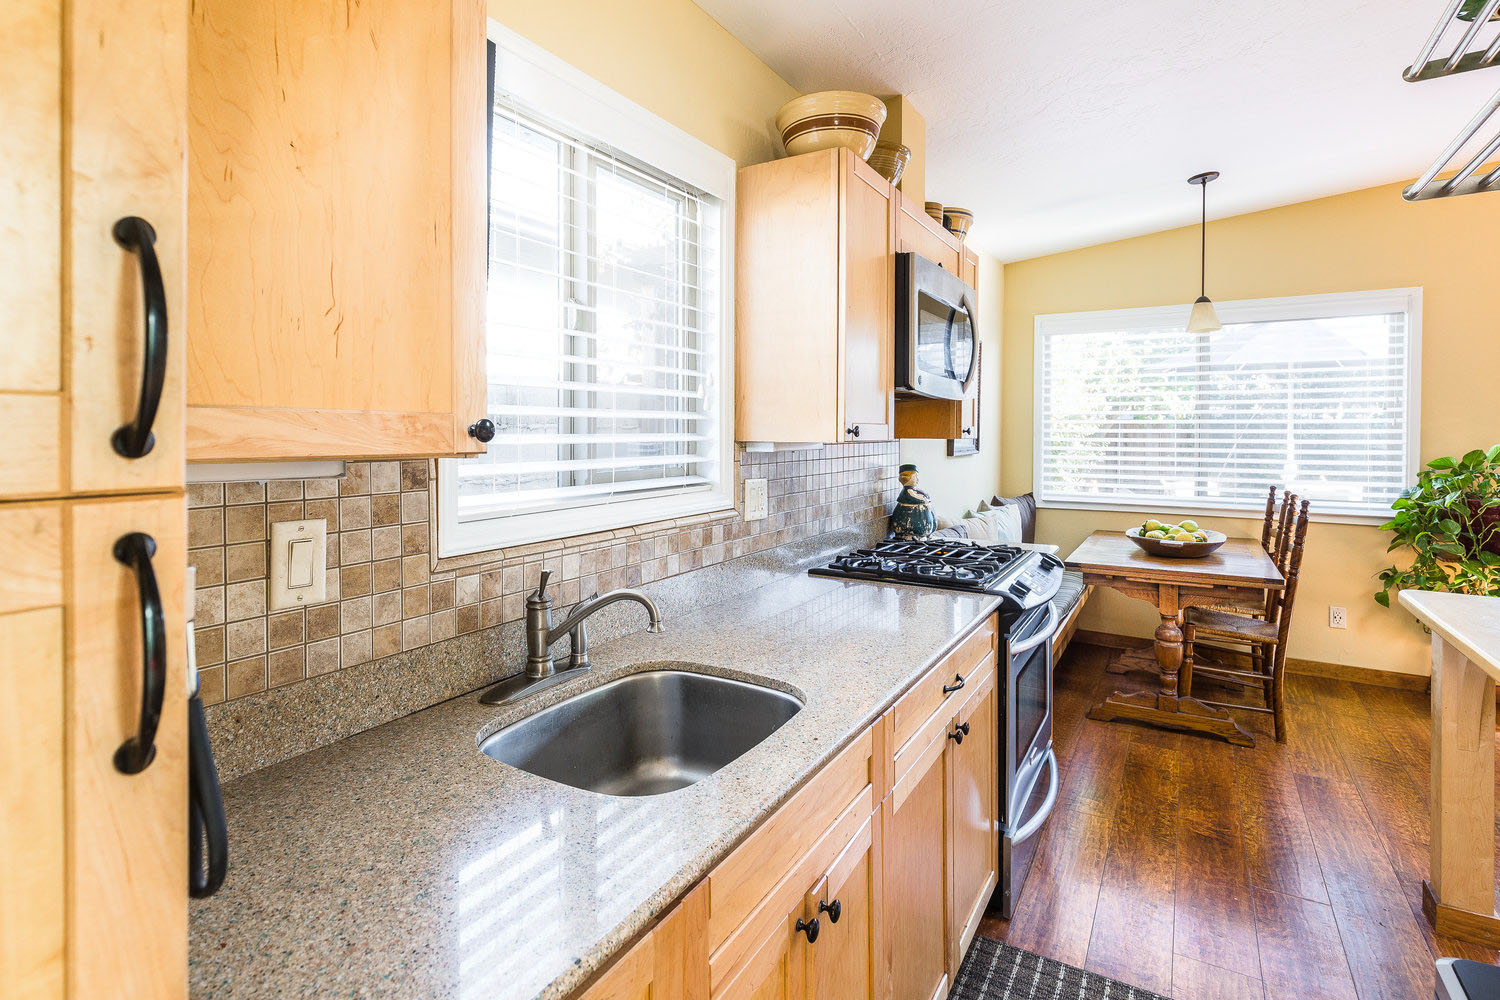 House for Sale in Santa Cruz, California. 573 Bethany Curve, Santa Cruz is a lower westside 2 bedroom 1 bathroom home just a few blocks from the ocean. Presented by Sam Bird-Robinson, Santa Cruz Realtor, of Sereno Group